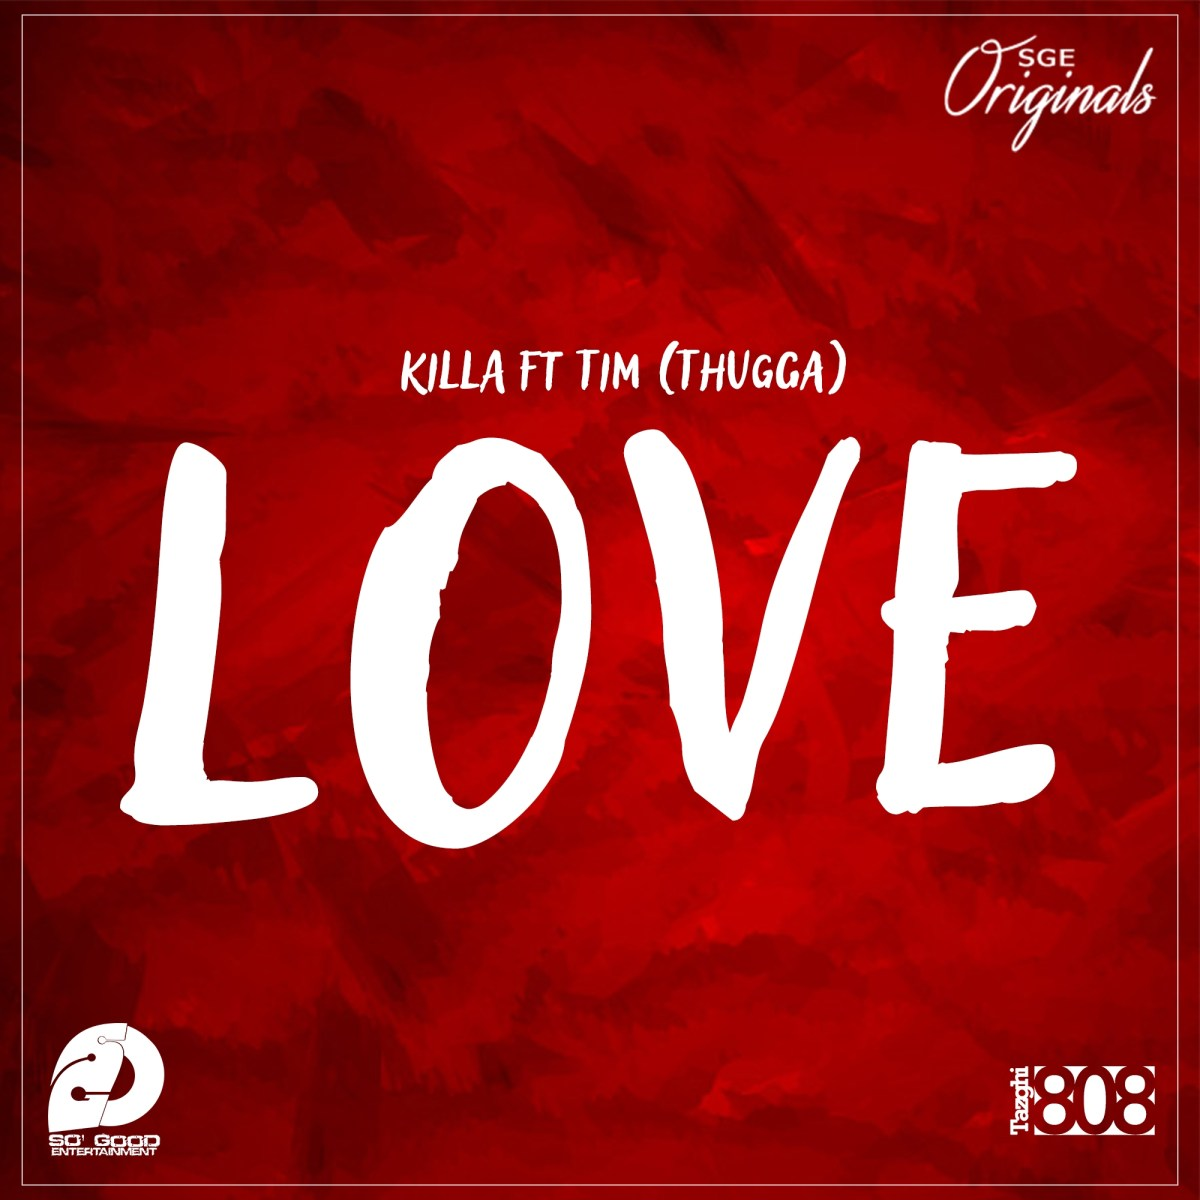 Love - Killa ft Tim Thugga